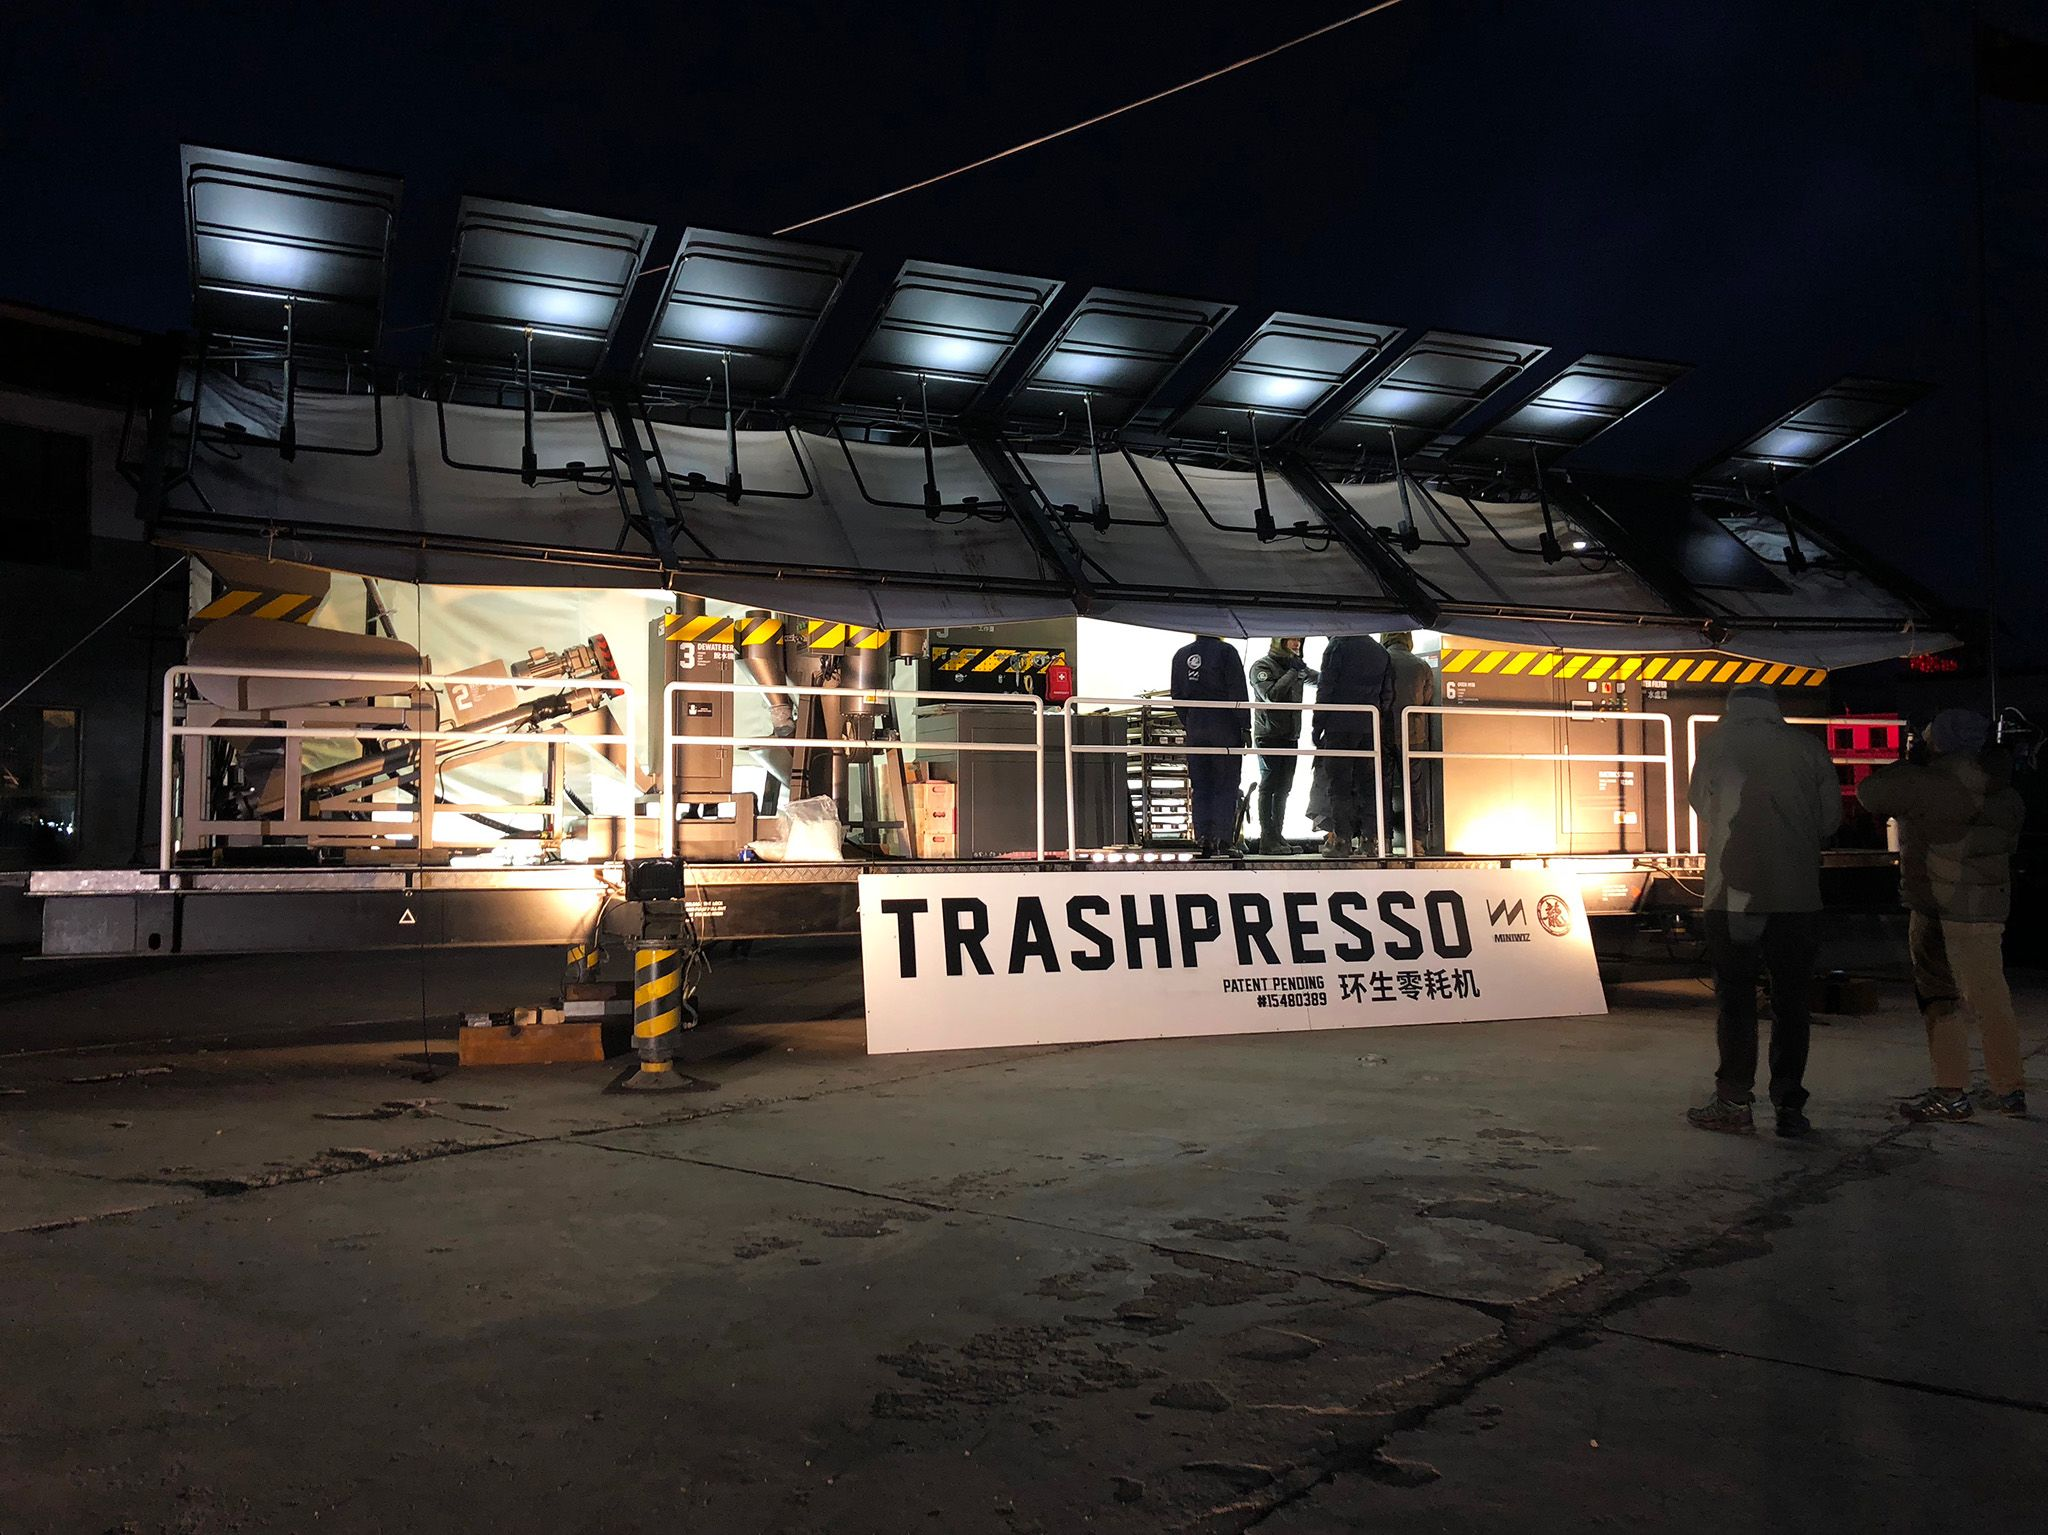 Trashpresso lit up at night, waiting for the tiles to cook. This image is from Jackie Chan's... [Photo of the day - September 2018]